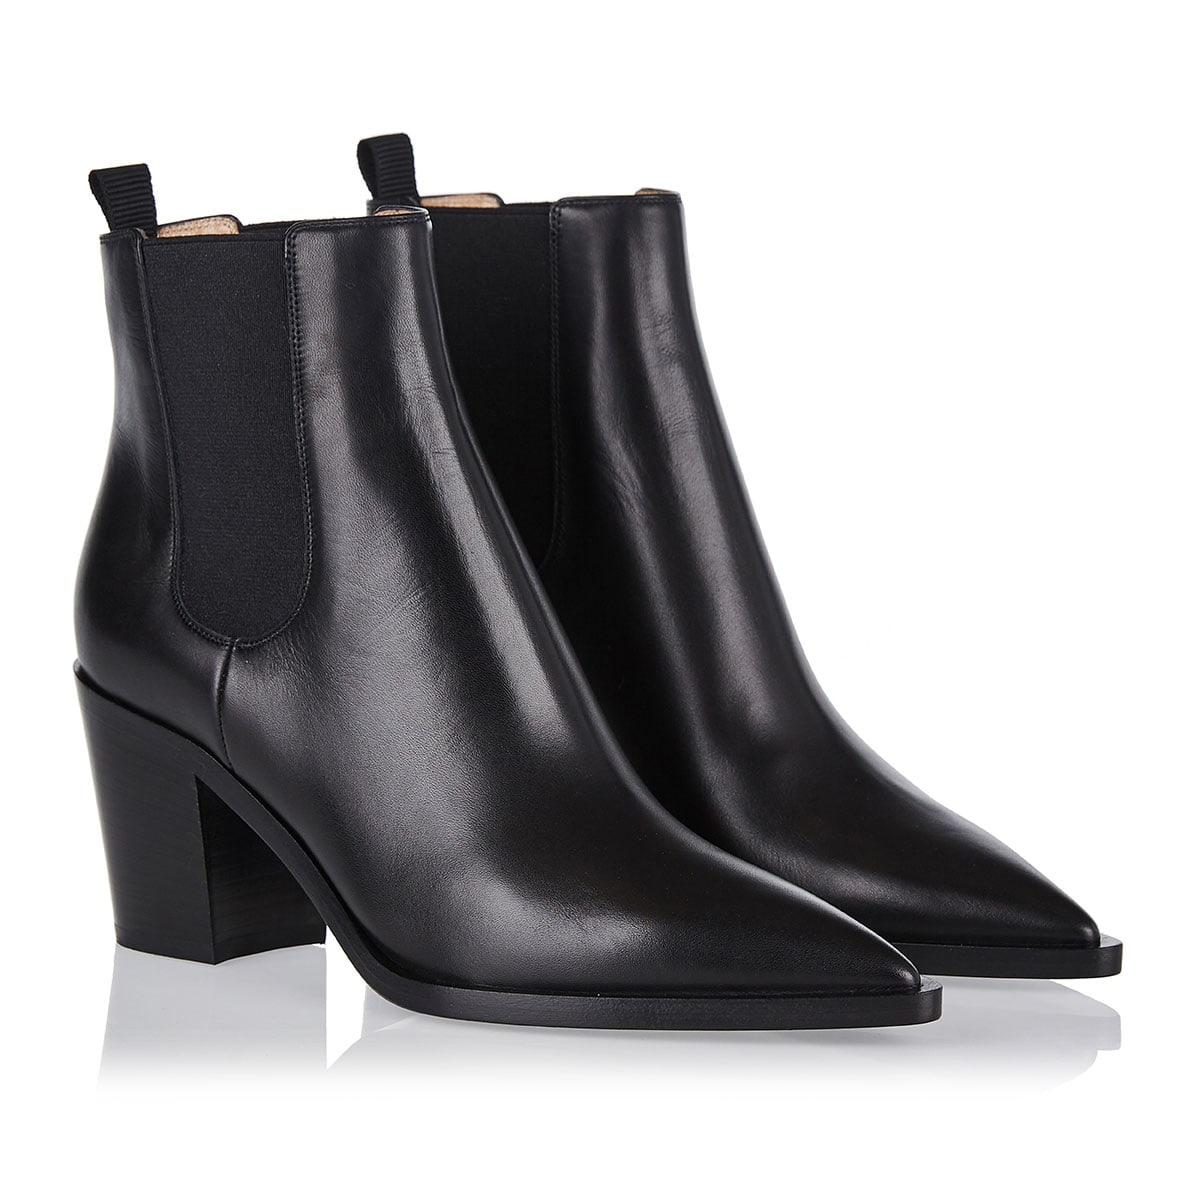 Romney 70 leather ankle boots